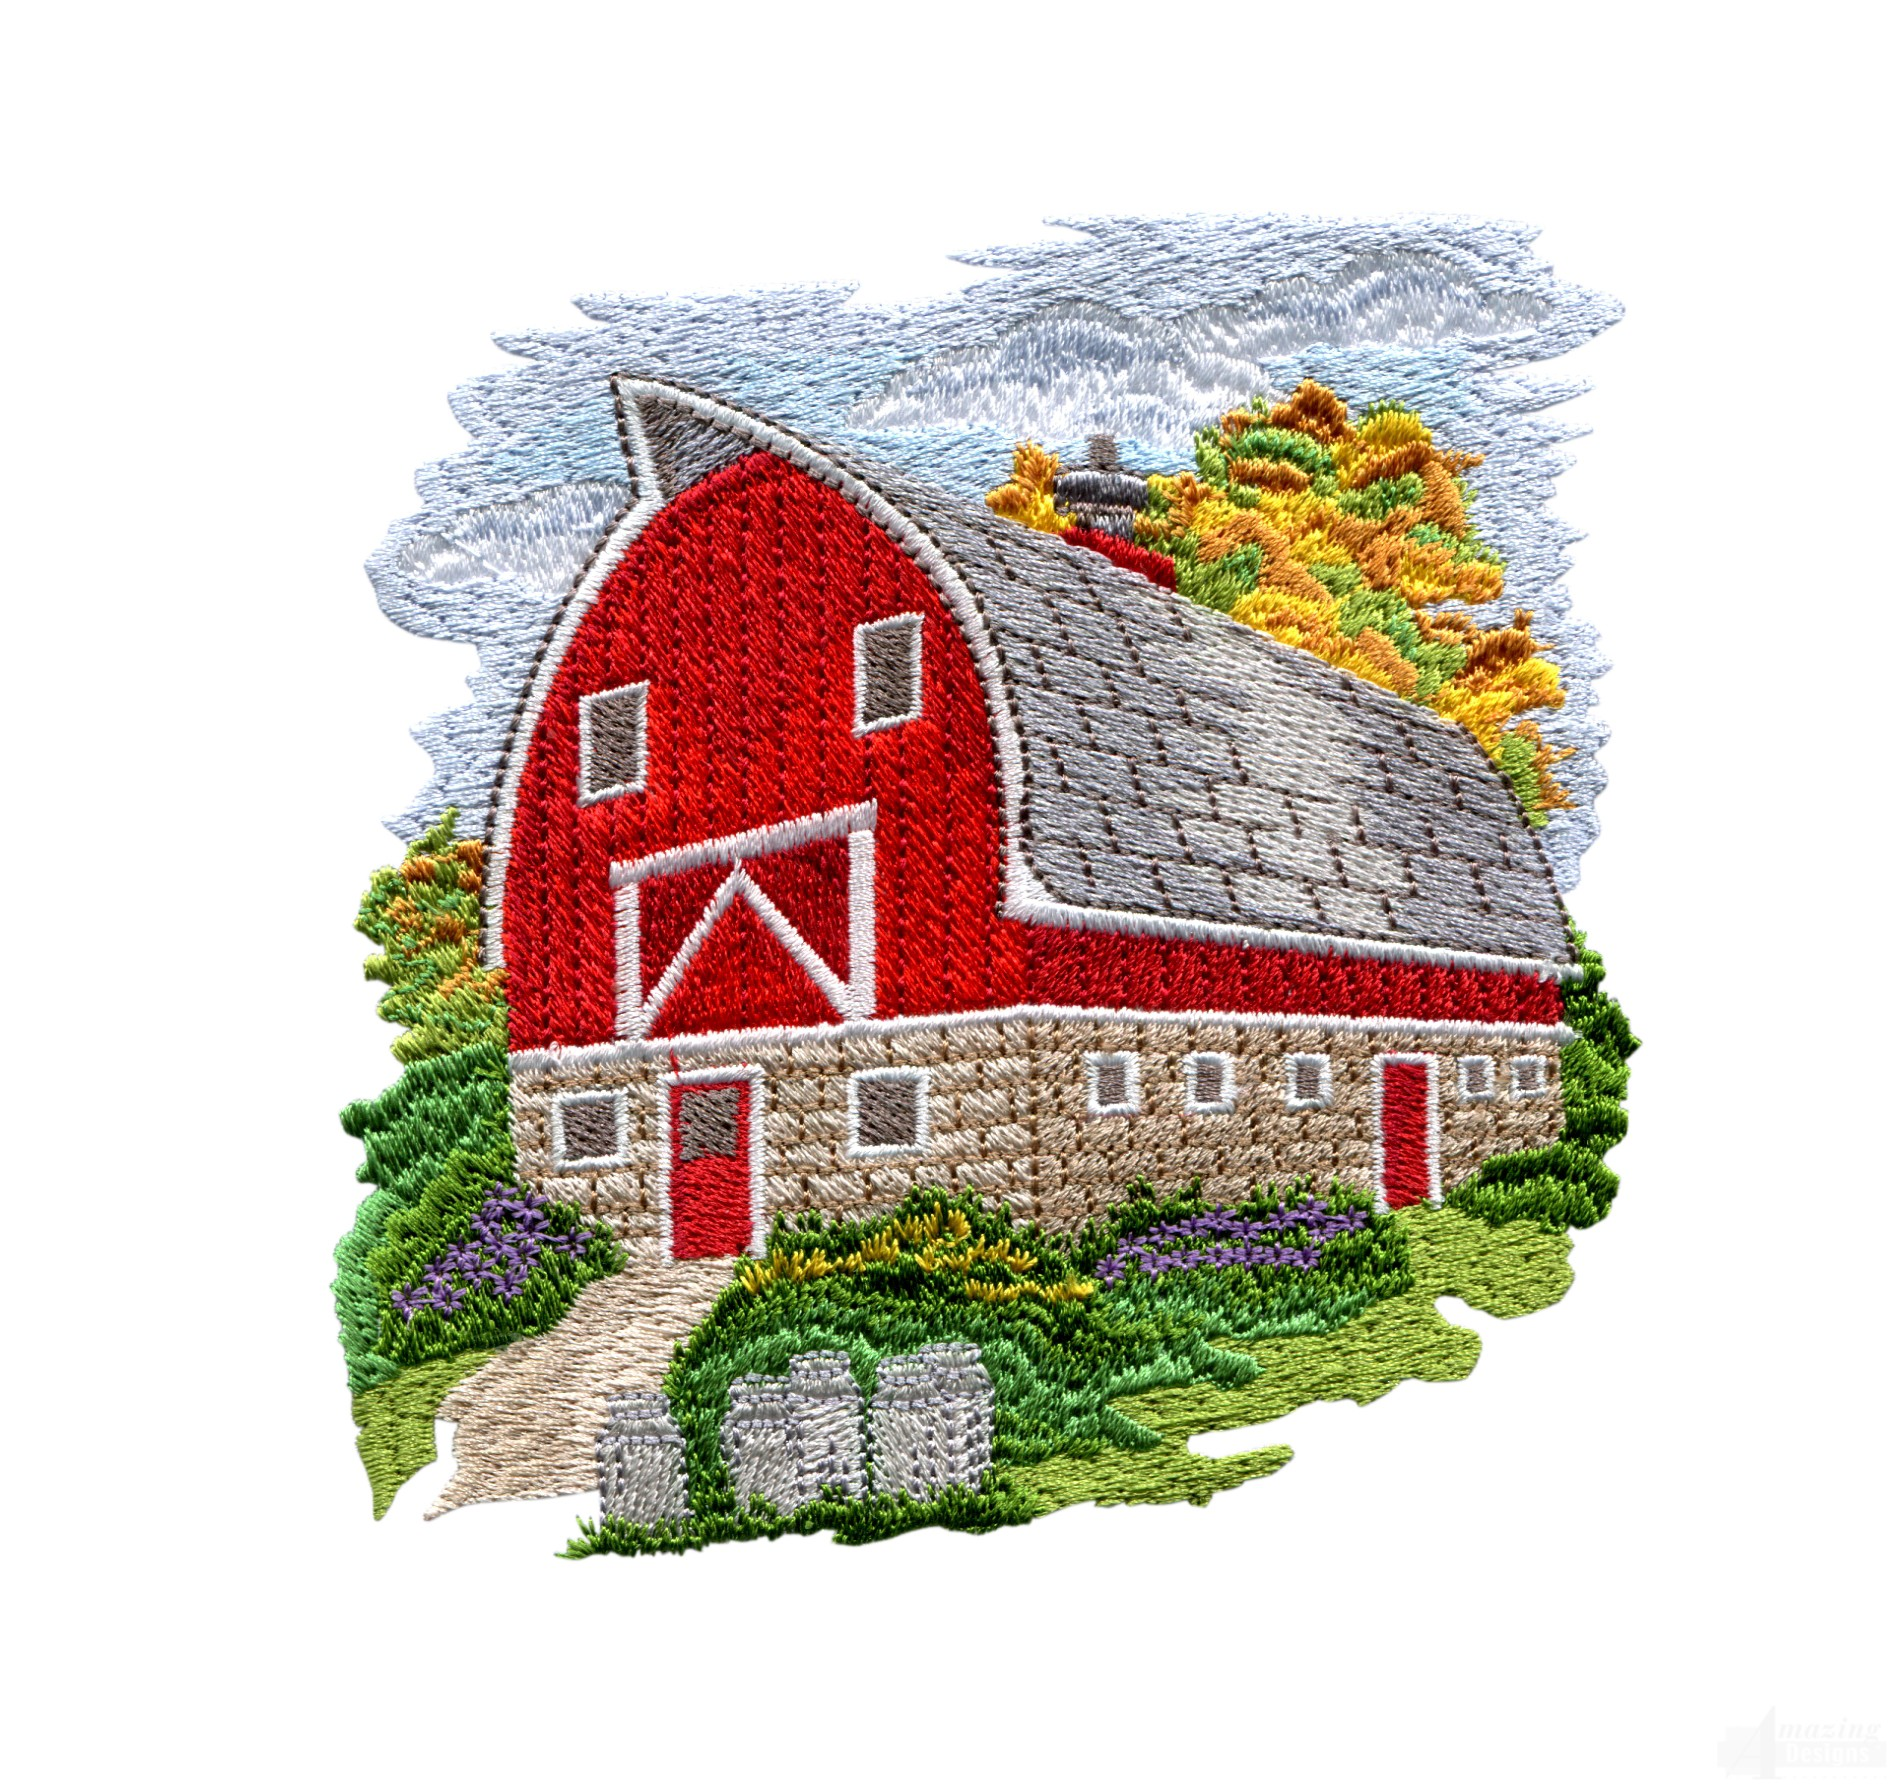 Rustic Barns Embroidery Design Collection on house quilt designs, house of embroidery, house finishing designs, house building designs, house home designs, house fonts, house wallpaper designs, house drawing designs, house construction designs, leaf designs, house furniture designs, house name plates designs, house christmas, house prints designs, house cake designs, house frames, house painting designs,